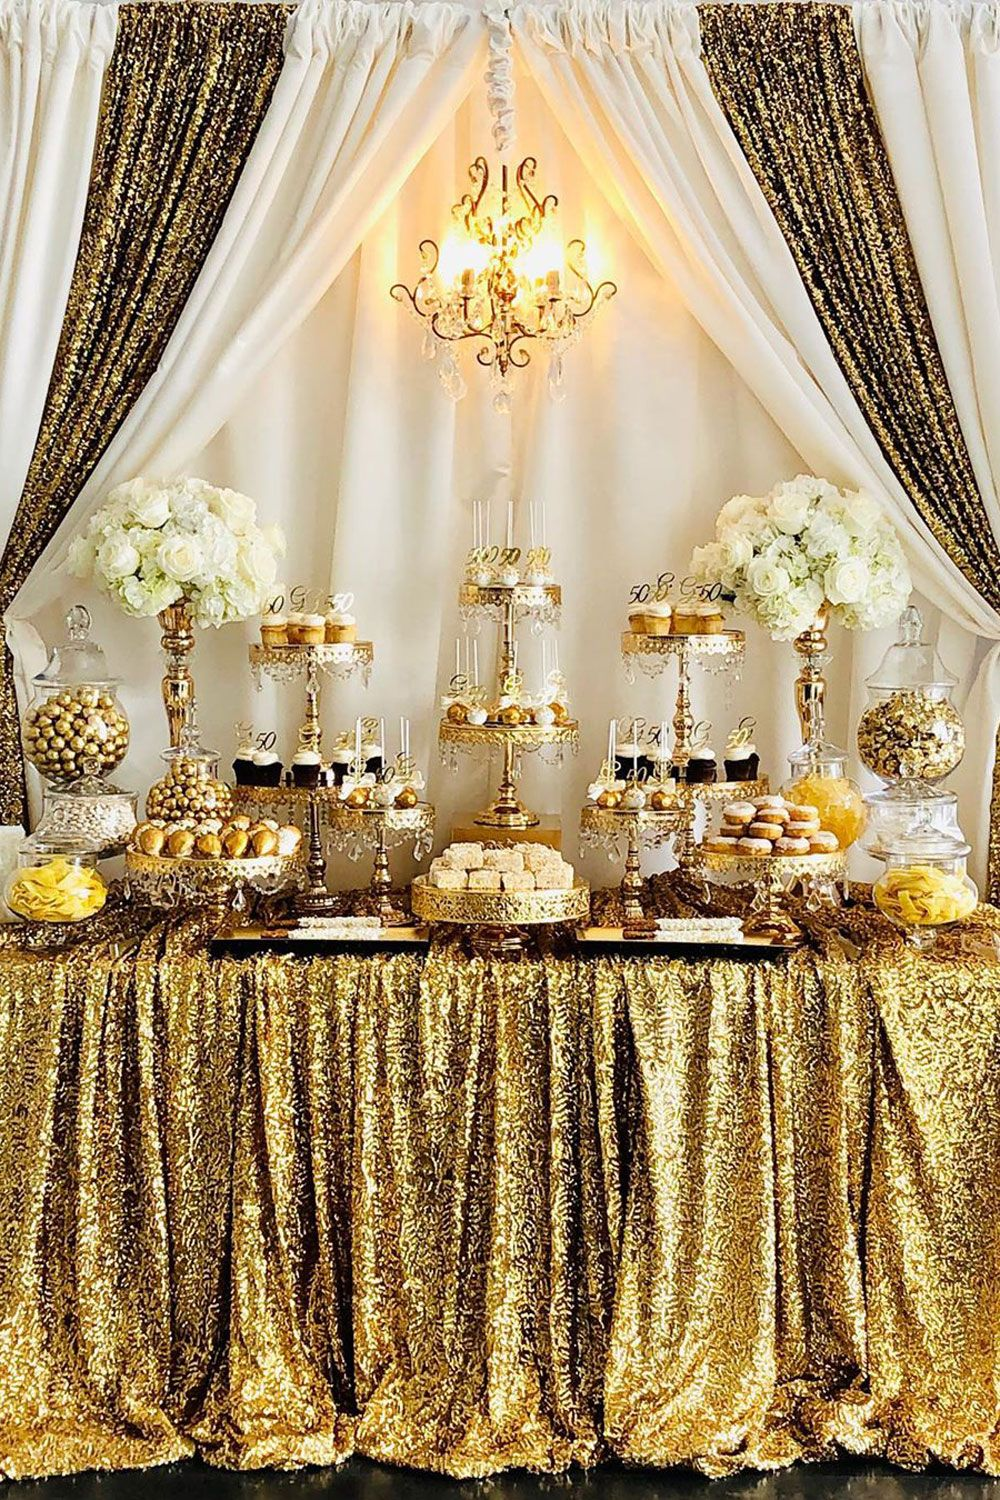 White And Gold 50th Birthday Dessert Table Styled By Bizziebeecreations Chandelier And Cake St Idee Deco Table Mariage Deco Mariage Blanc Deco Table Mariage